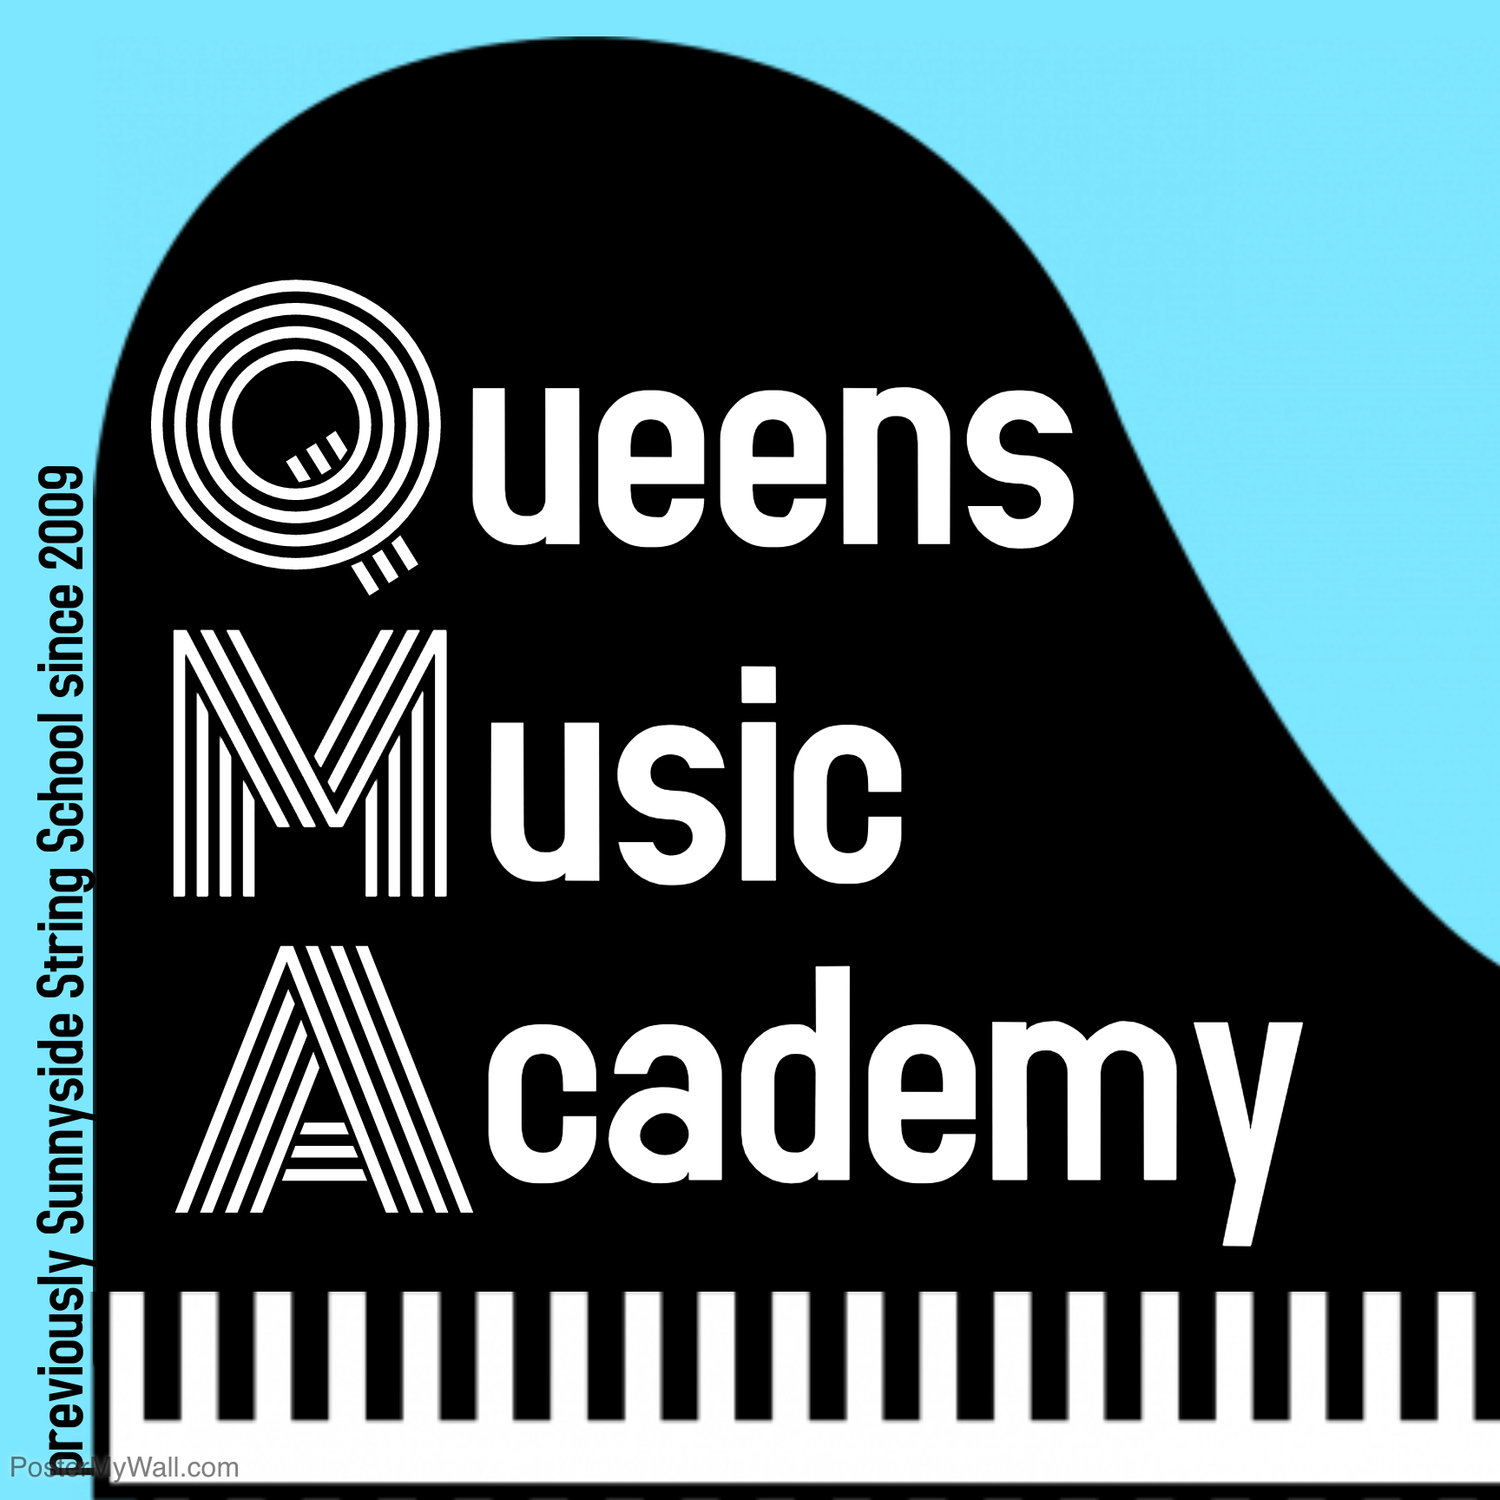 Queens Music Academy | Music Lessons and Art/Lego Camp in Queens, NY